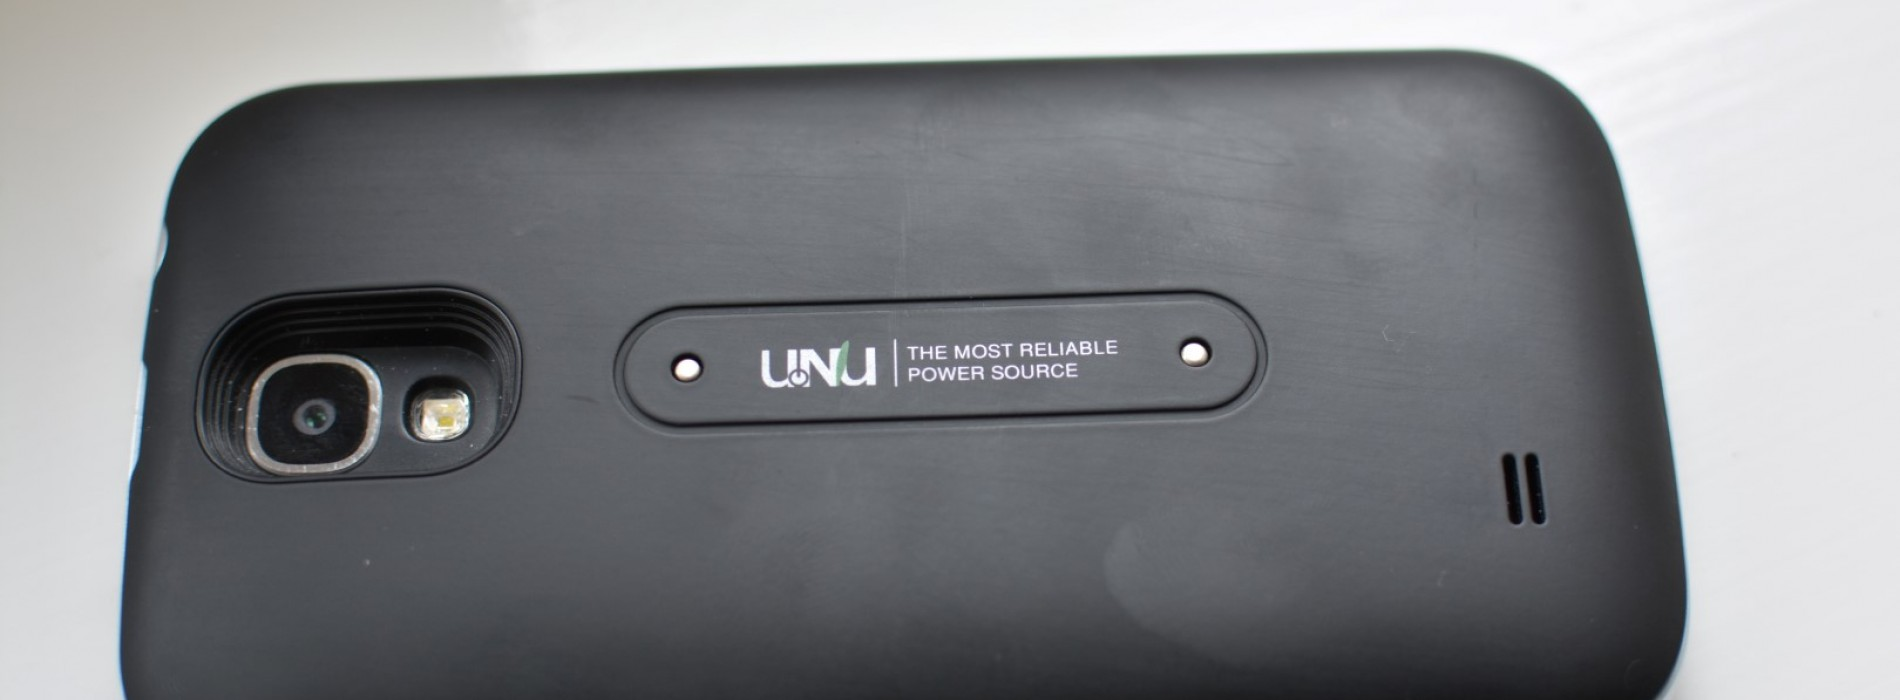 uNu Aero Wireless Charging Battery Case and Mat for Samsung Galaxy S4 Review